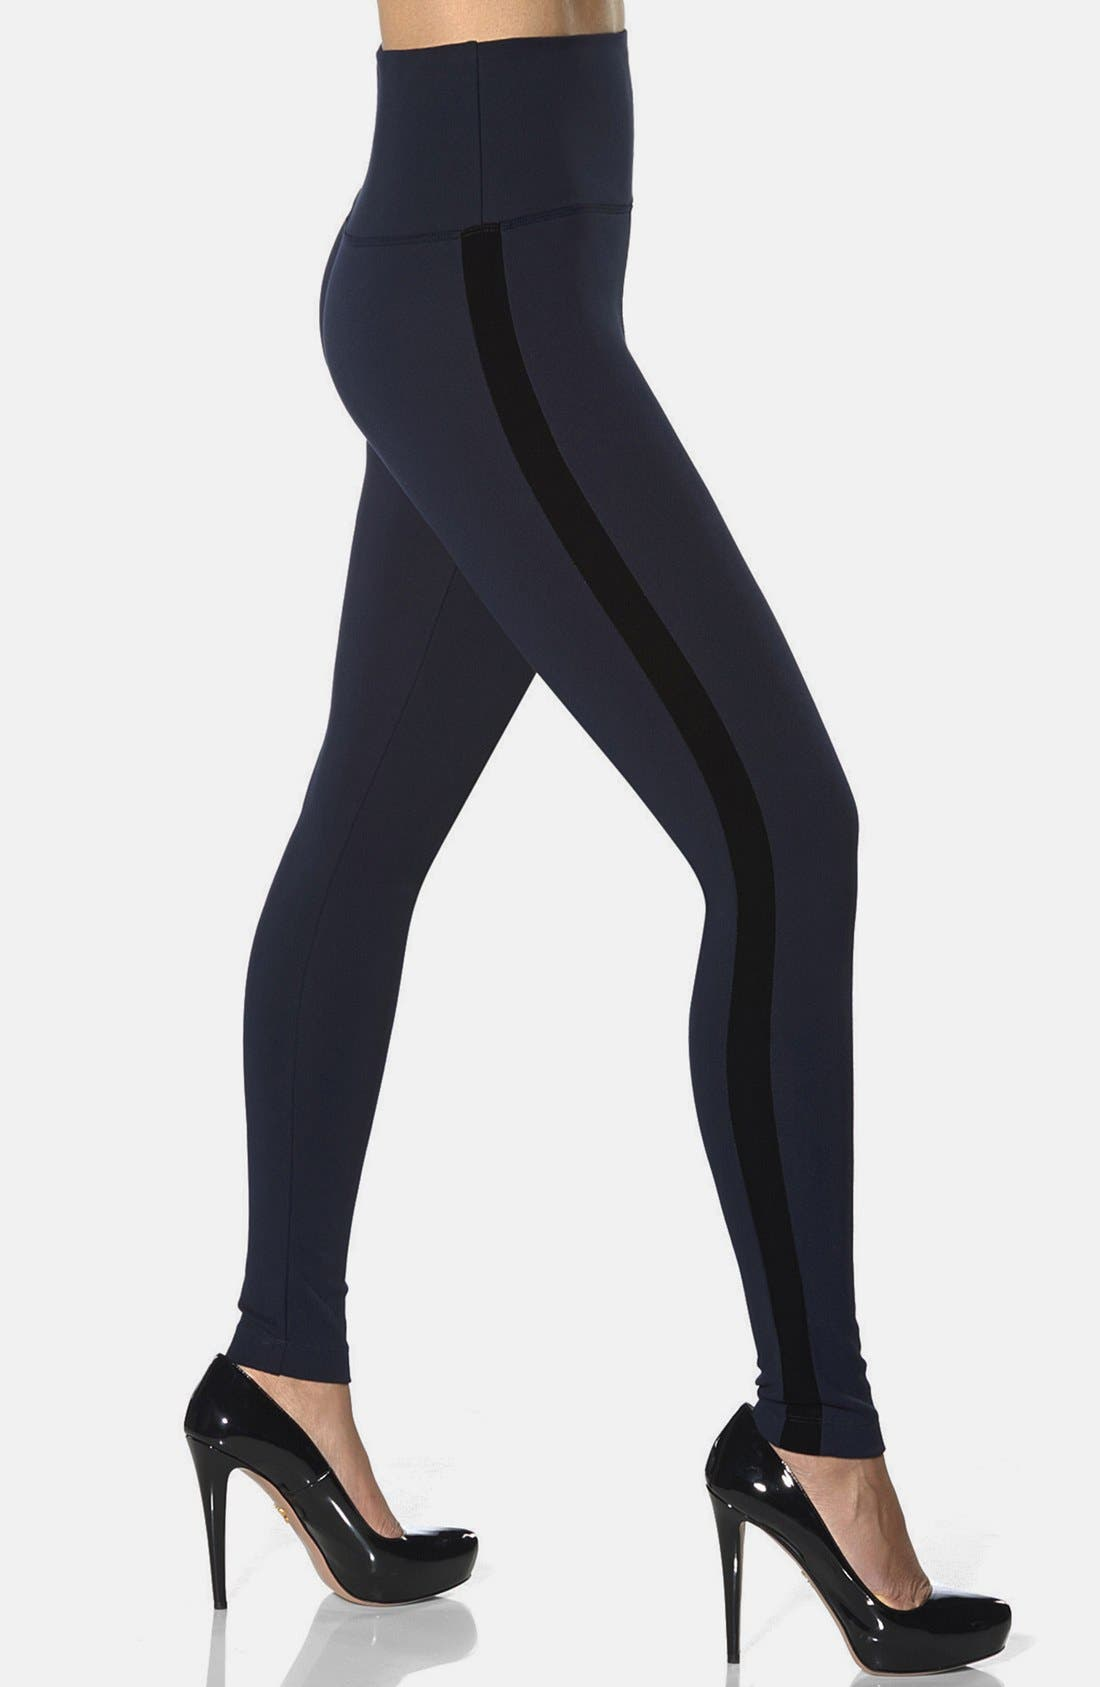 Alternate Image 1 Selected - Lyssé Velvet Trim Control Top Leggings